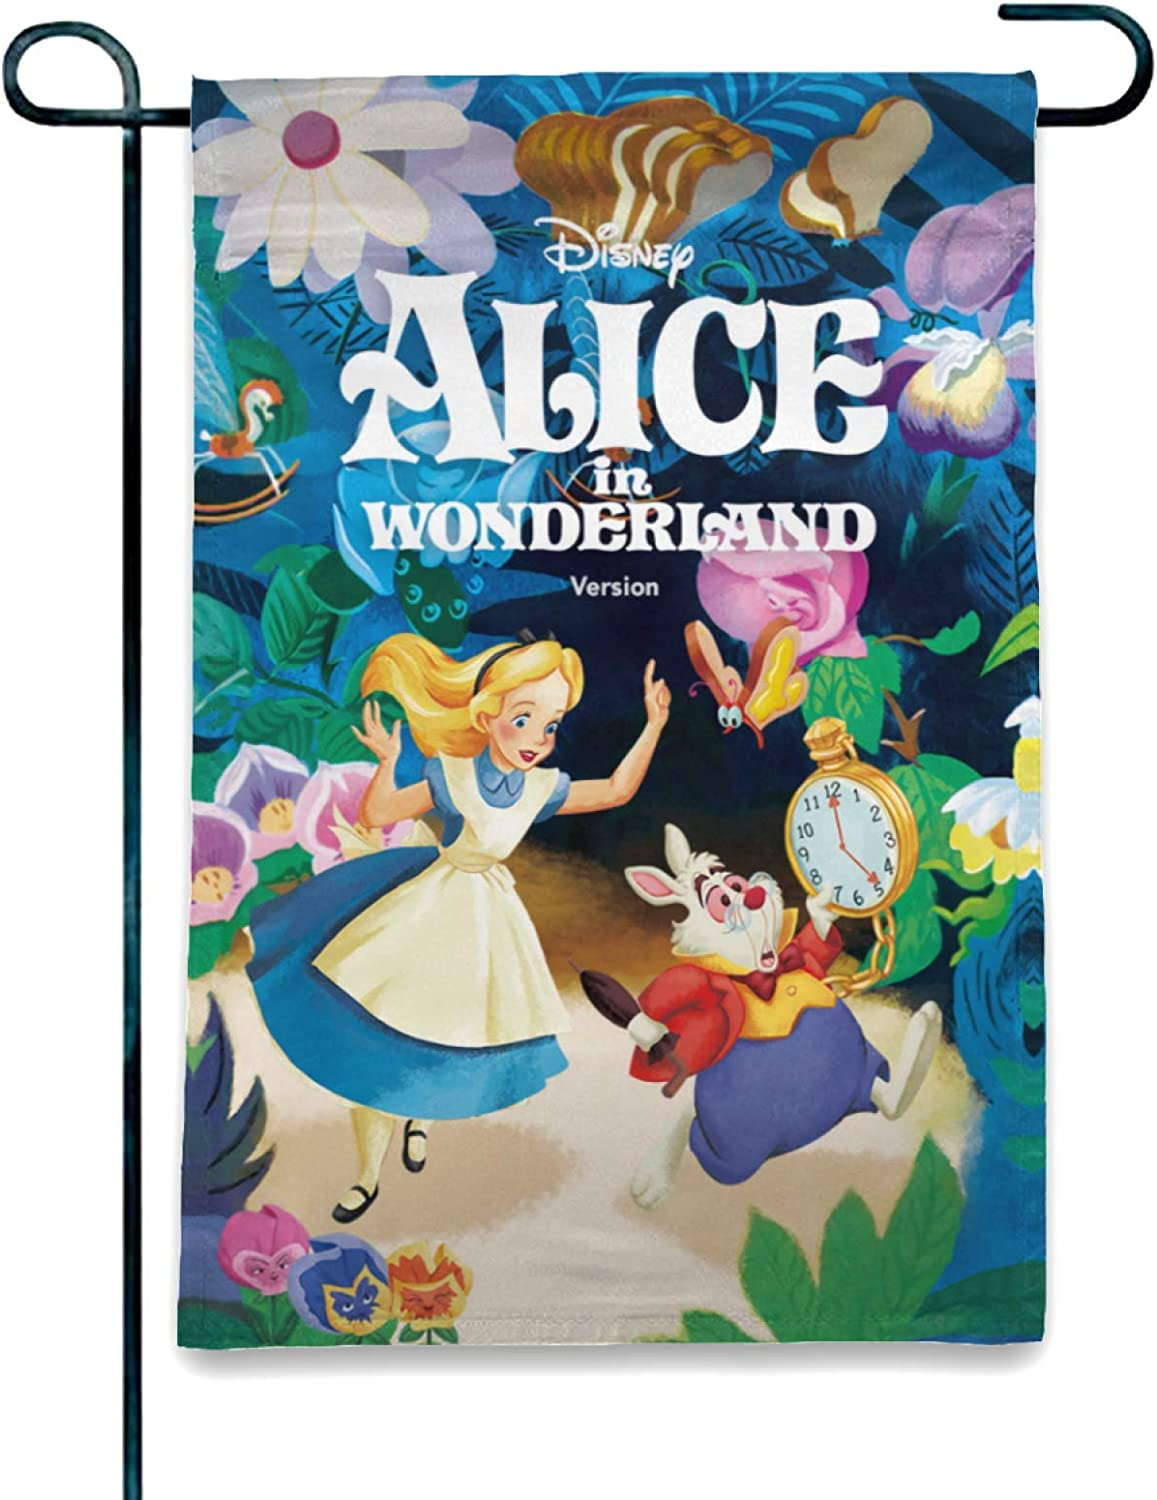 OAbear Welcome Alice in Wonderland Garden Flag Yard Decorations Use 100% Waterproof Polyester Flags